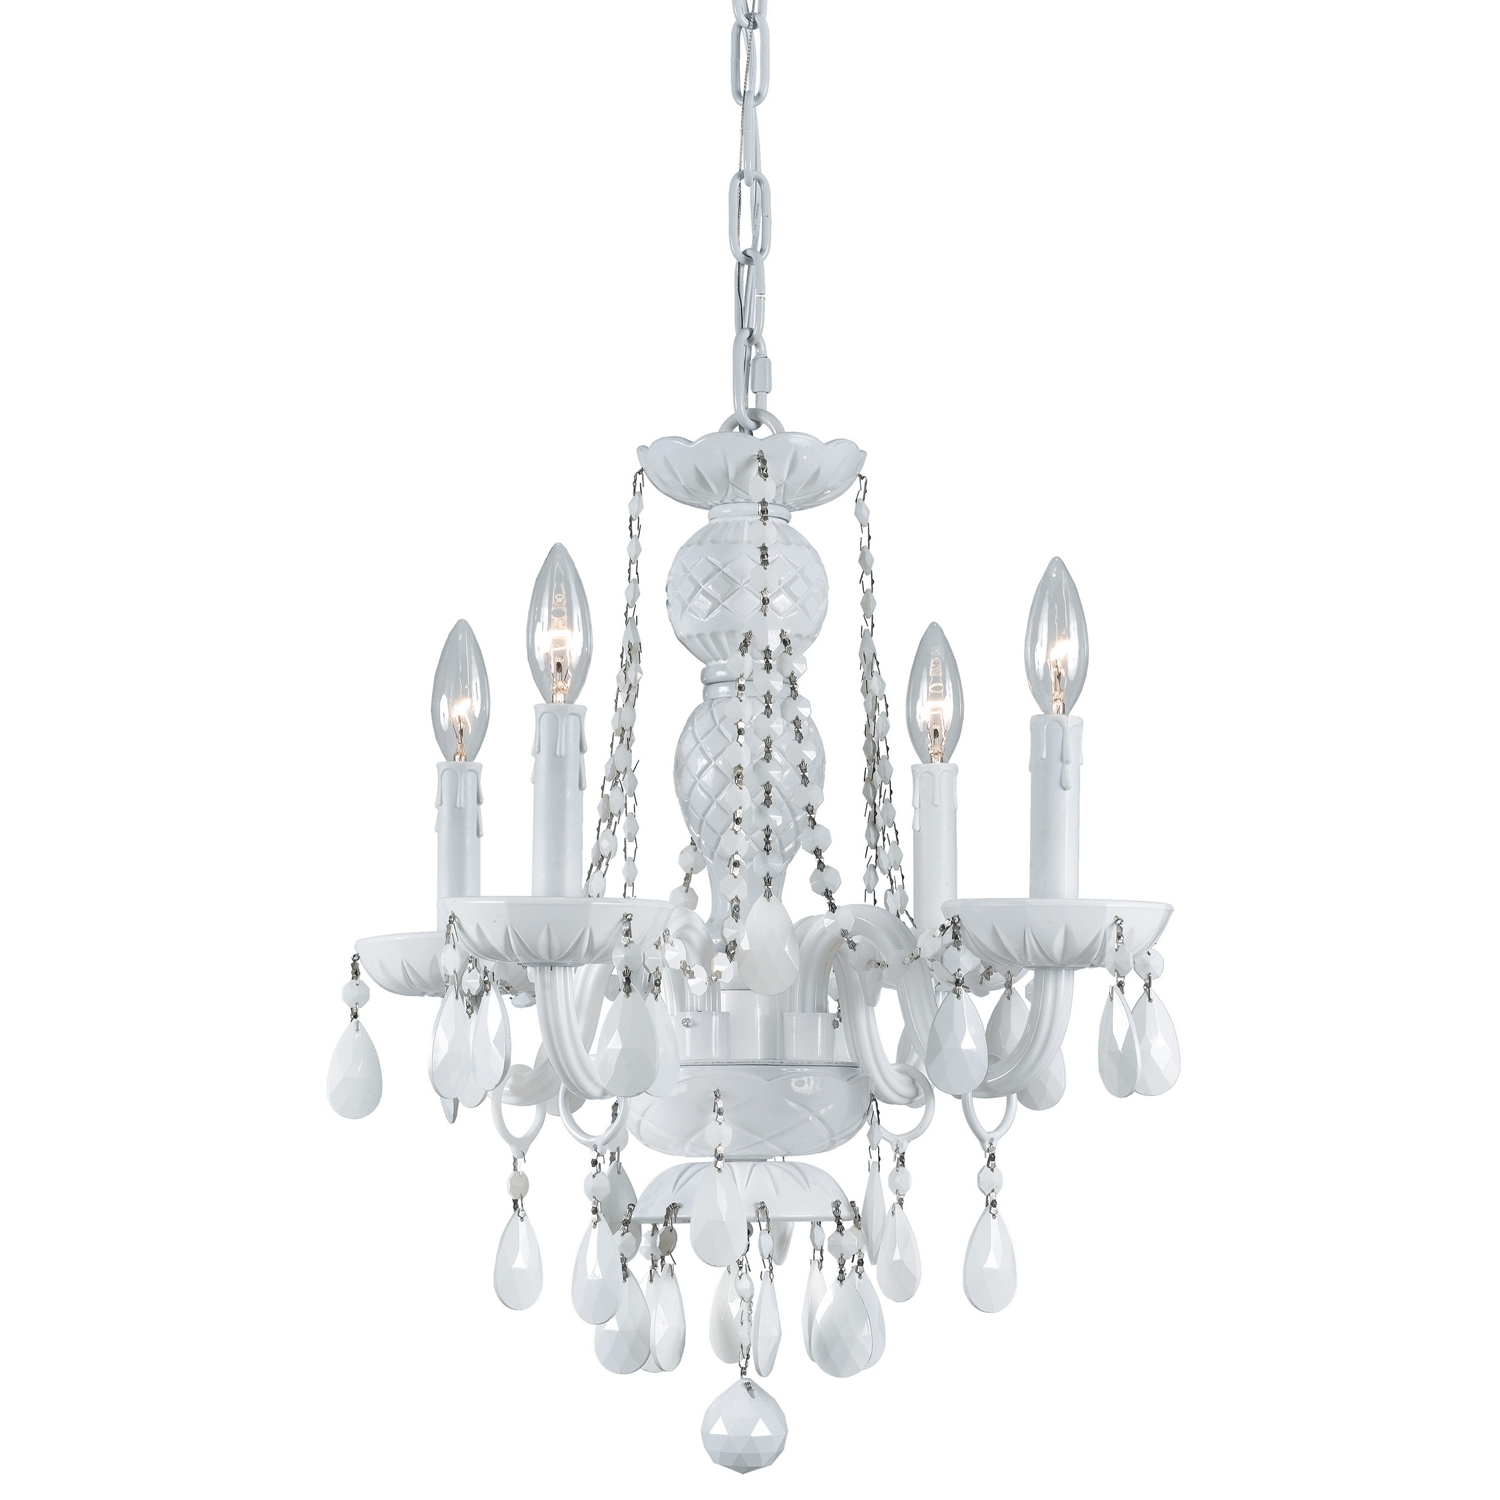 Small White Chandeliers Pertaining To Current Mini Chandeliers For Bedroom – Internetunblock – Internetunblock (View 4 of 20)